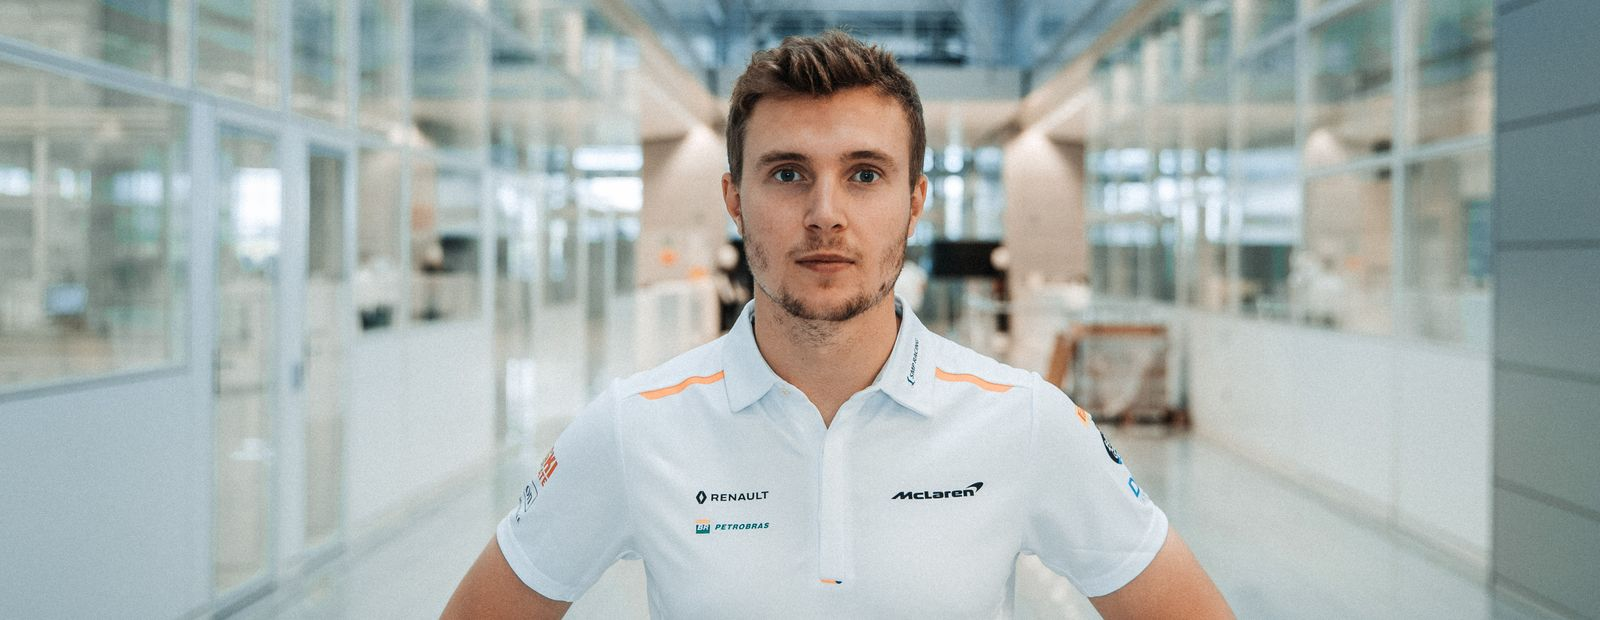 McLaren and Renault reach agreement on 2019 reserve driver